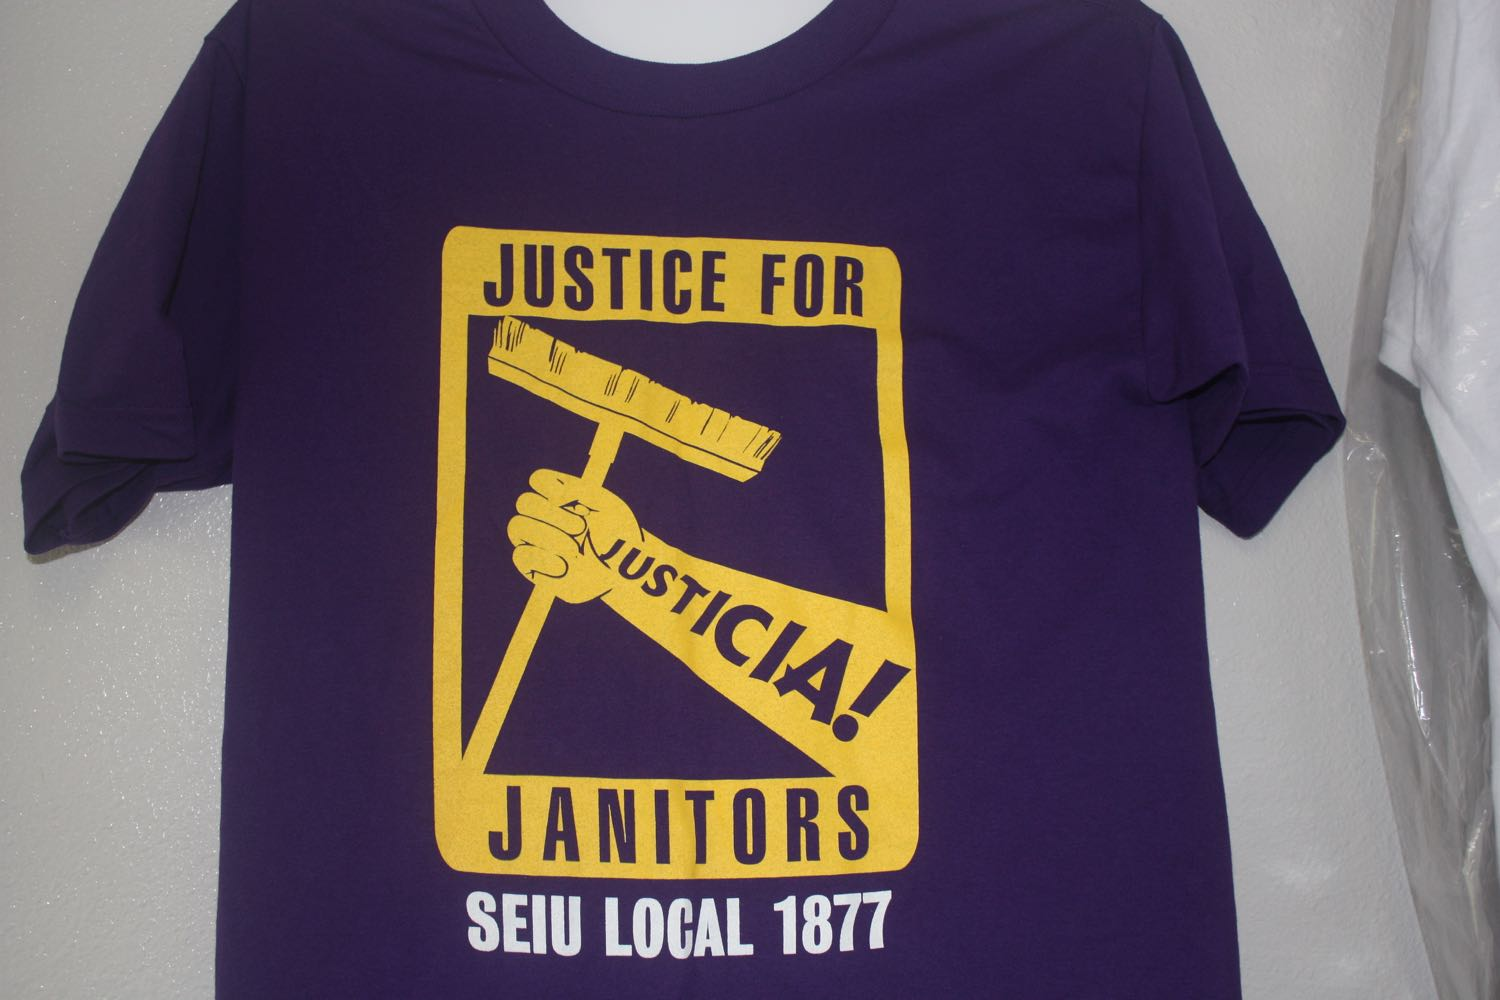 Justice for Janitors 1